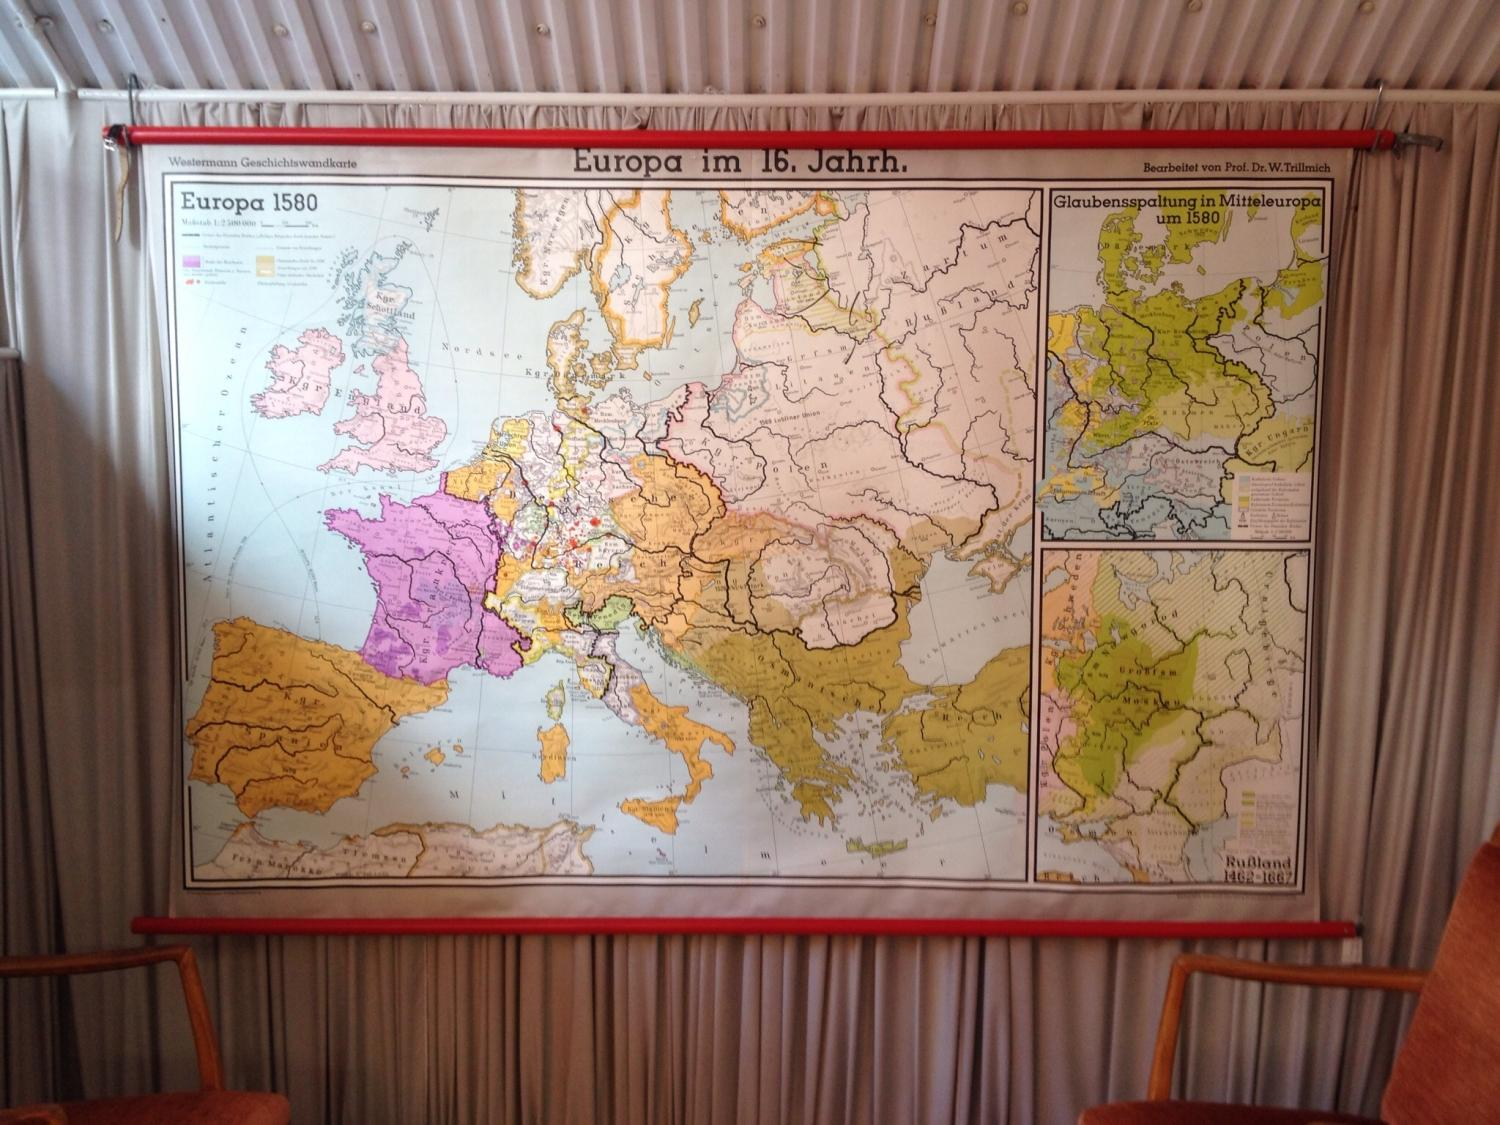 Map of Europe in the 1600's